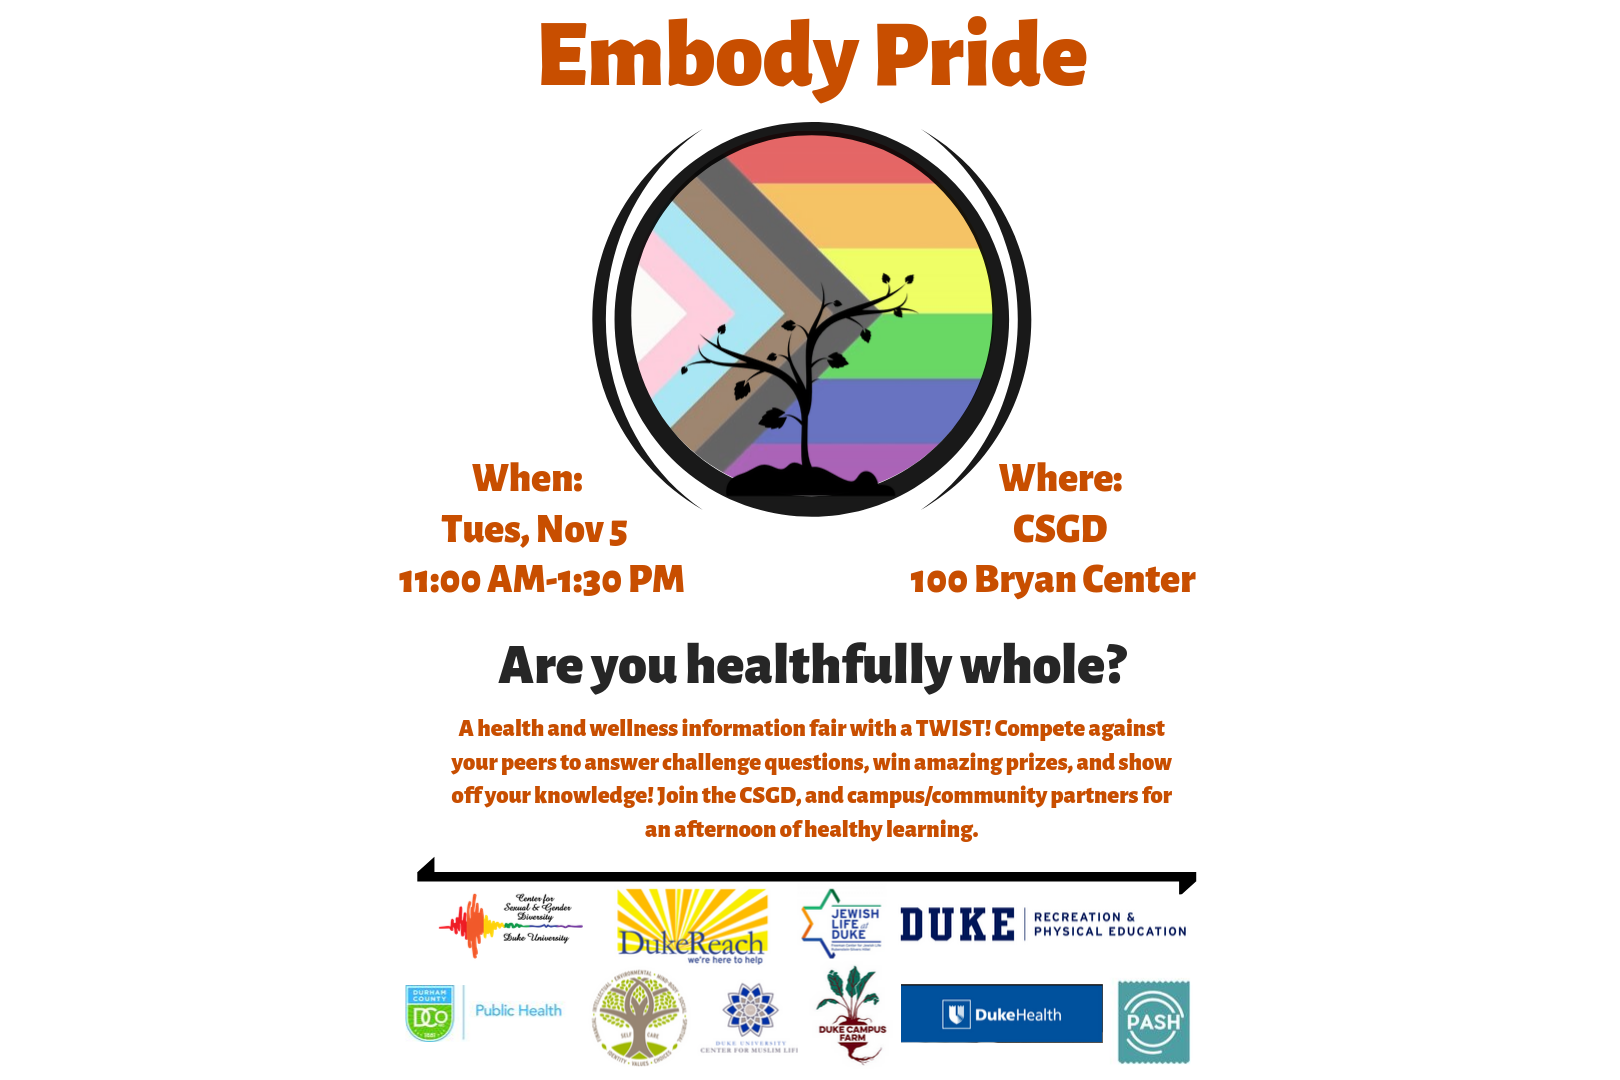 Text: Embody Pride. Tuesday Novemebr 5 from 11AM-1:30PM. Are you healthfully whole? The CSGD wants to know! The Center is hosting a LGBTQIA+ health and wellness fair with a TWIST! Compete against your peers to answer challenge questions, win amazing prizes, and and show off your knowledge.Stop by the CSGD on Tuesday, November 5 from 11AM-1:30PM for an afternoon of healthy learning with our Center, and campus/community partners! White background with pride flag coupled with plant.